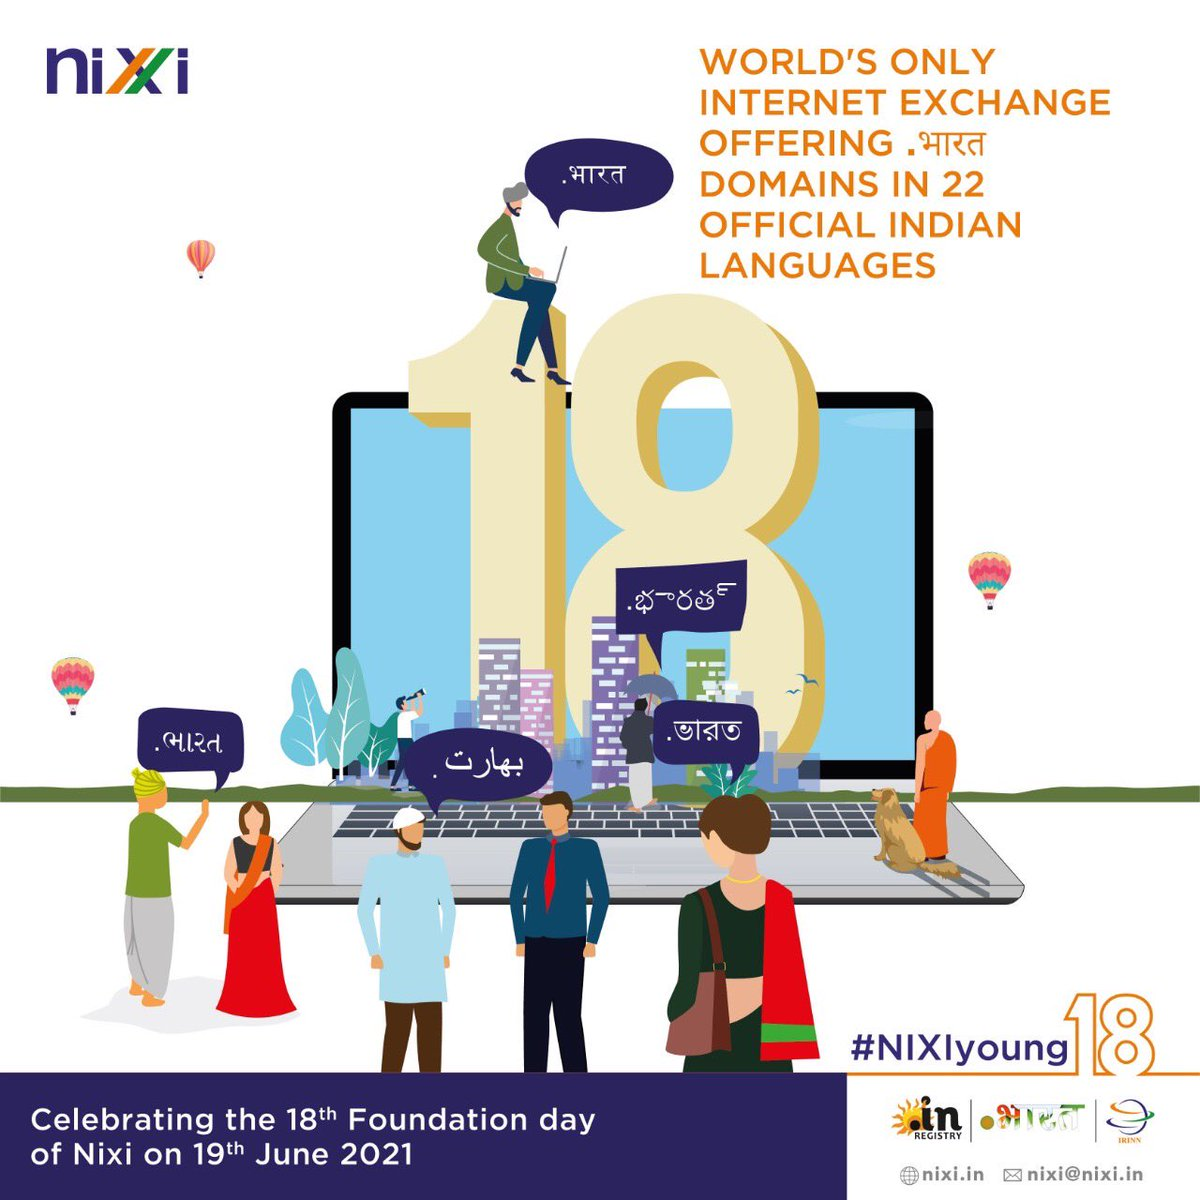 The only Internet Domain Registry that has made .IN domain available in all 22 official languages of the country - now that's something to celebrate! #NIXIyoung18  #celebration #18years #milestone #achievement #business #domain #dotin #internet #internetexchange https://t.co/GcIXlN6FJO